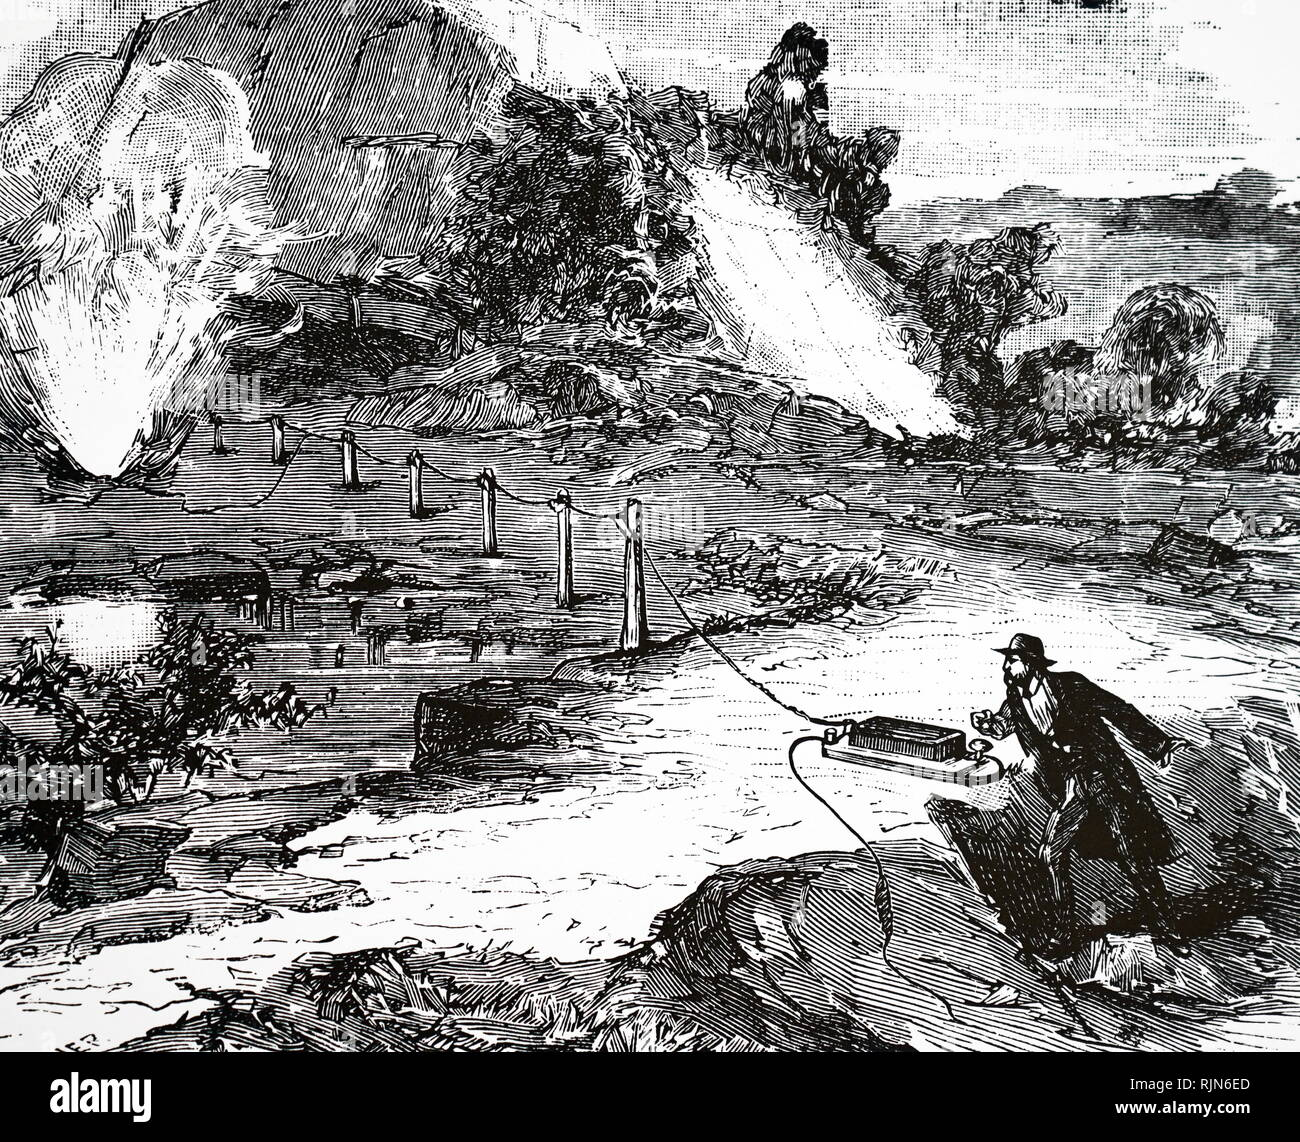 Detonating explosive charges electrically; France 1881 - Stock Image